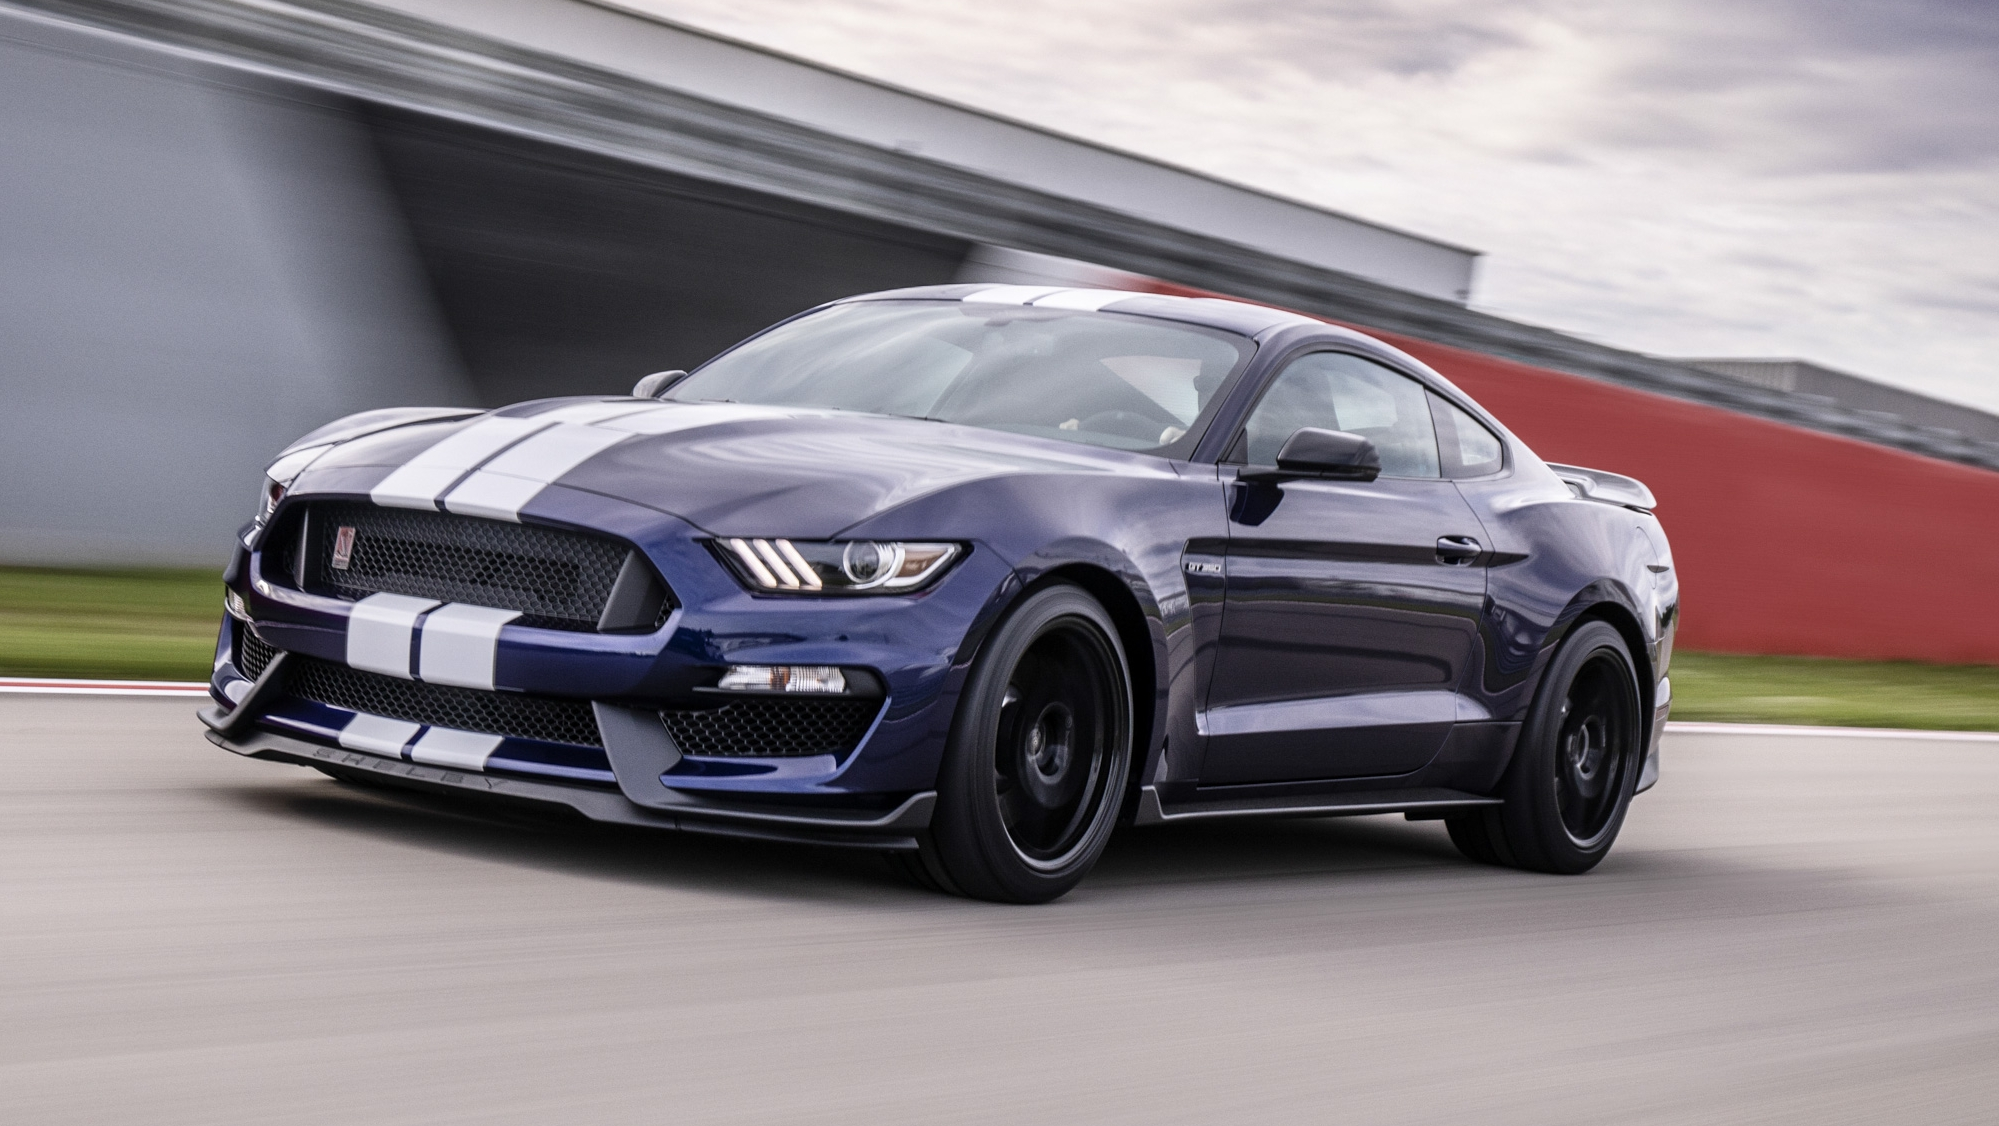 Ford Infuses The 2019 Mustang Shelby GT350 With Racing And GT500 DNA Pictures, Photos ...